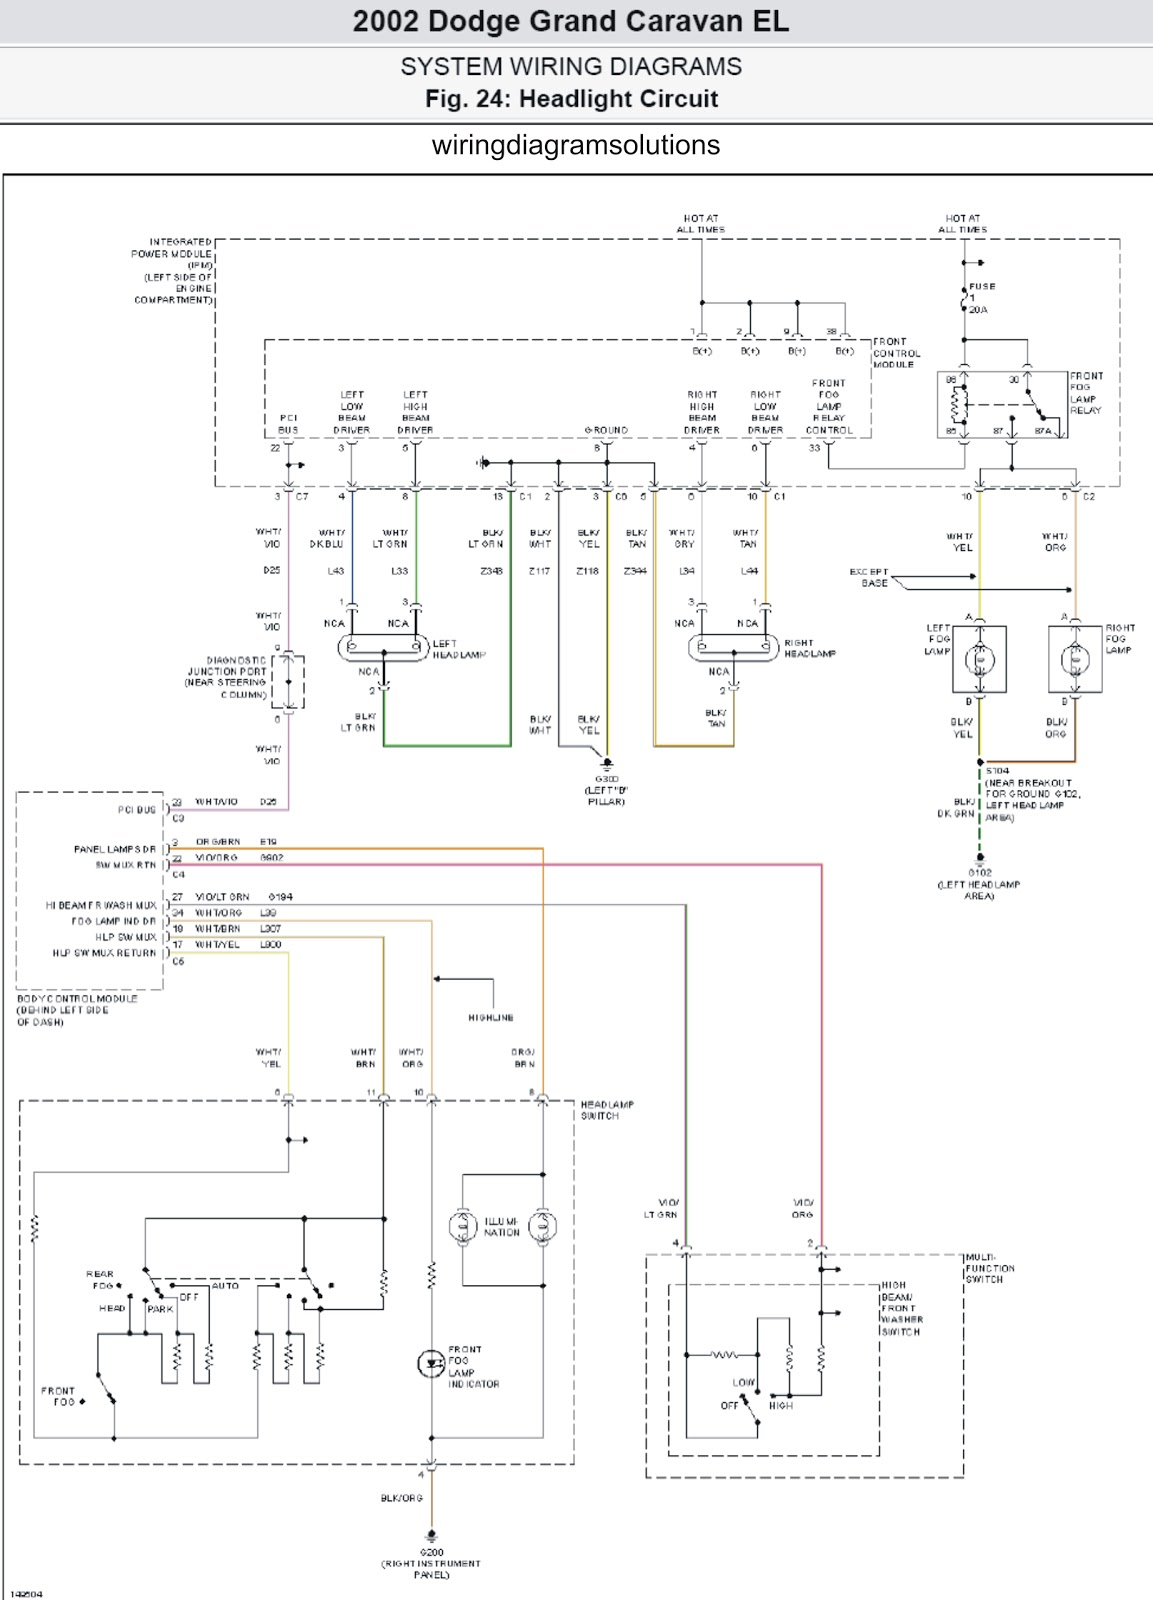 1997 Dodge Caravan Pcm Wiring Diagram | Wiring Diagram on